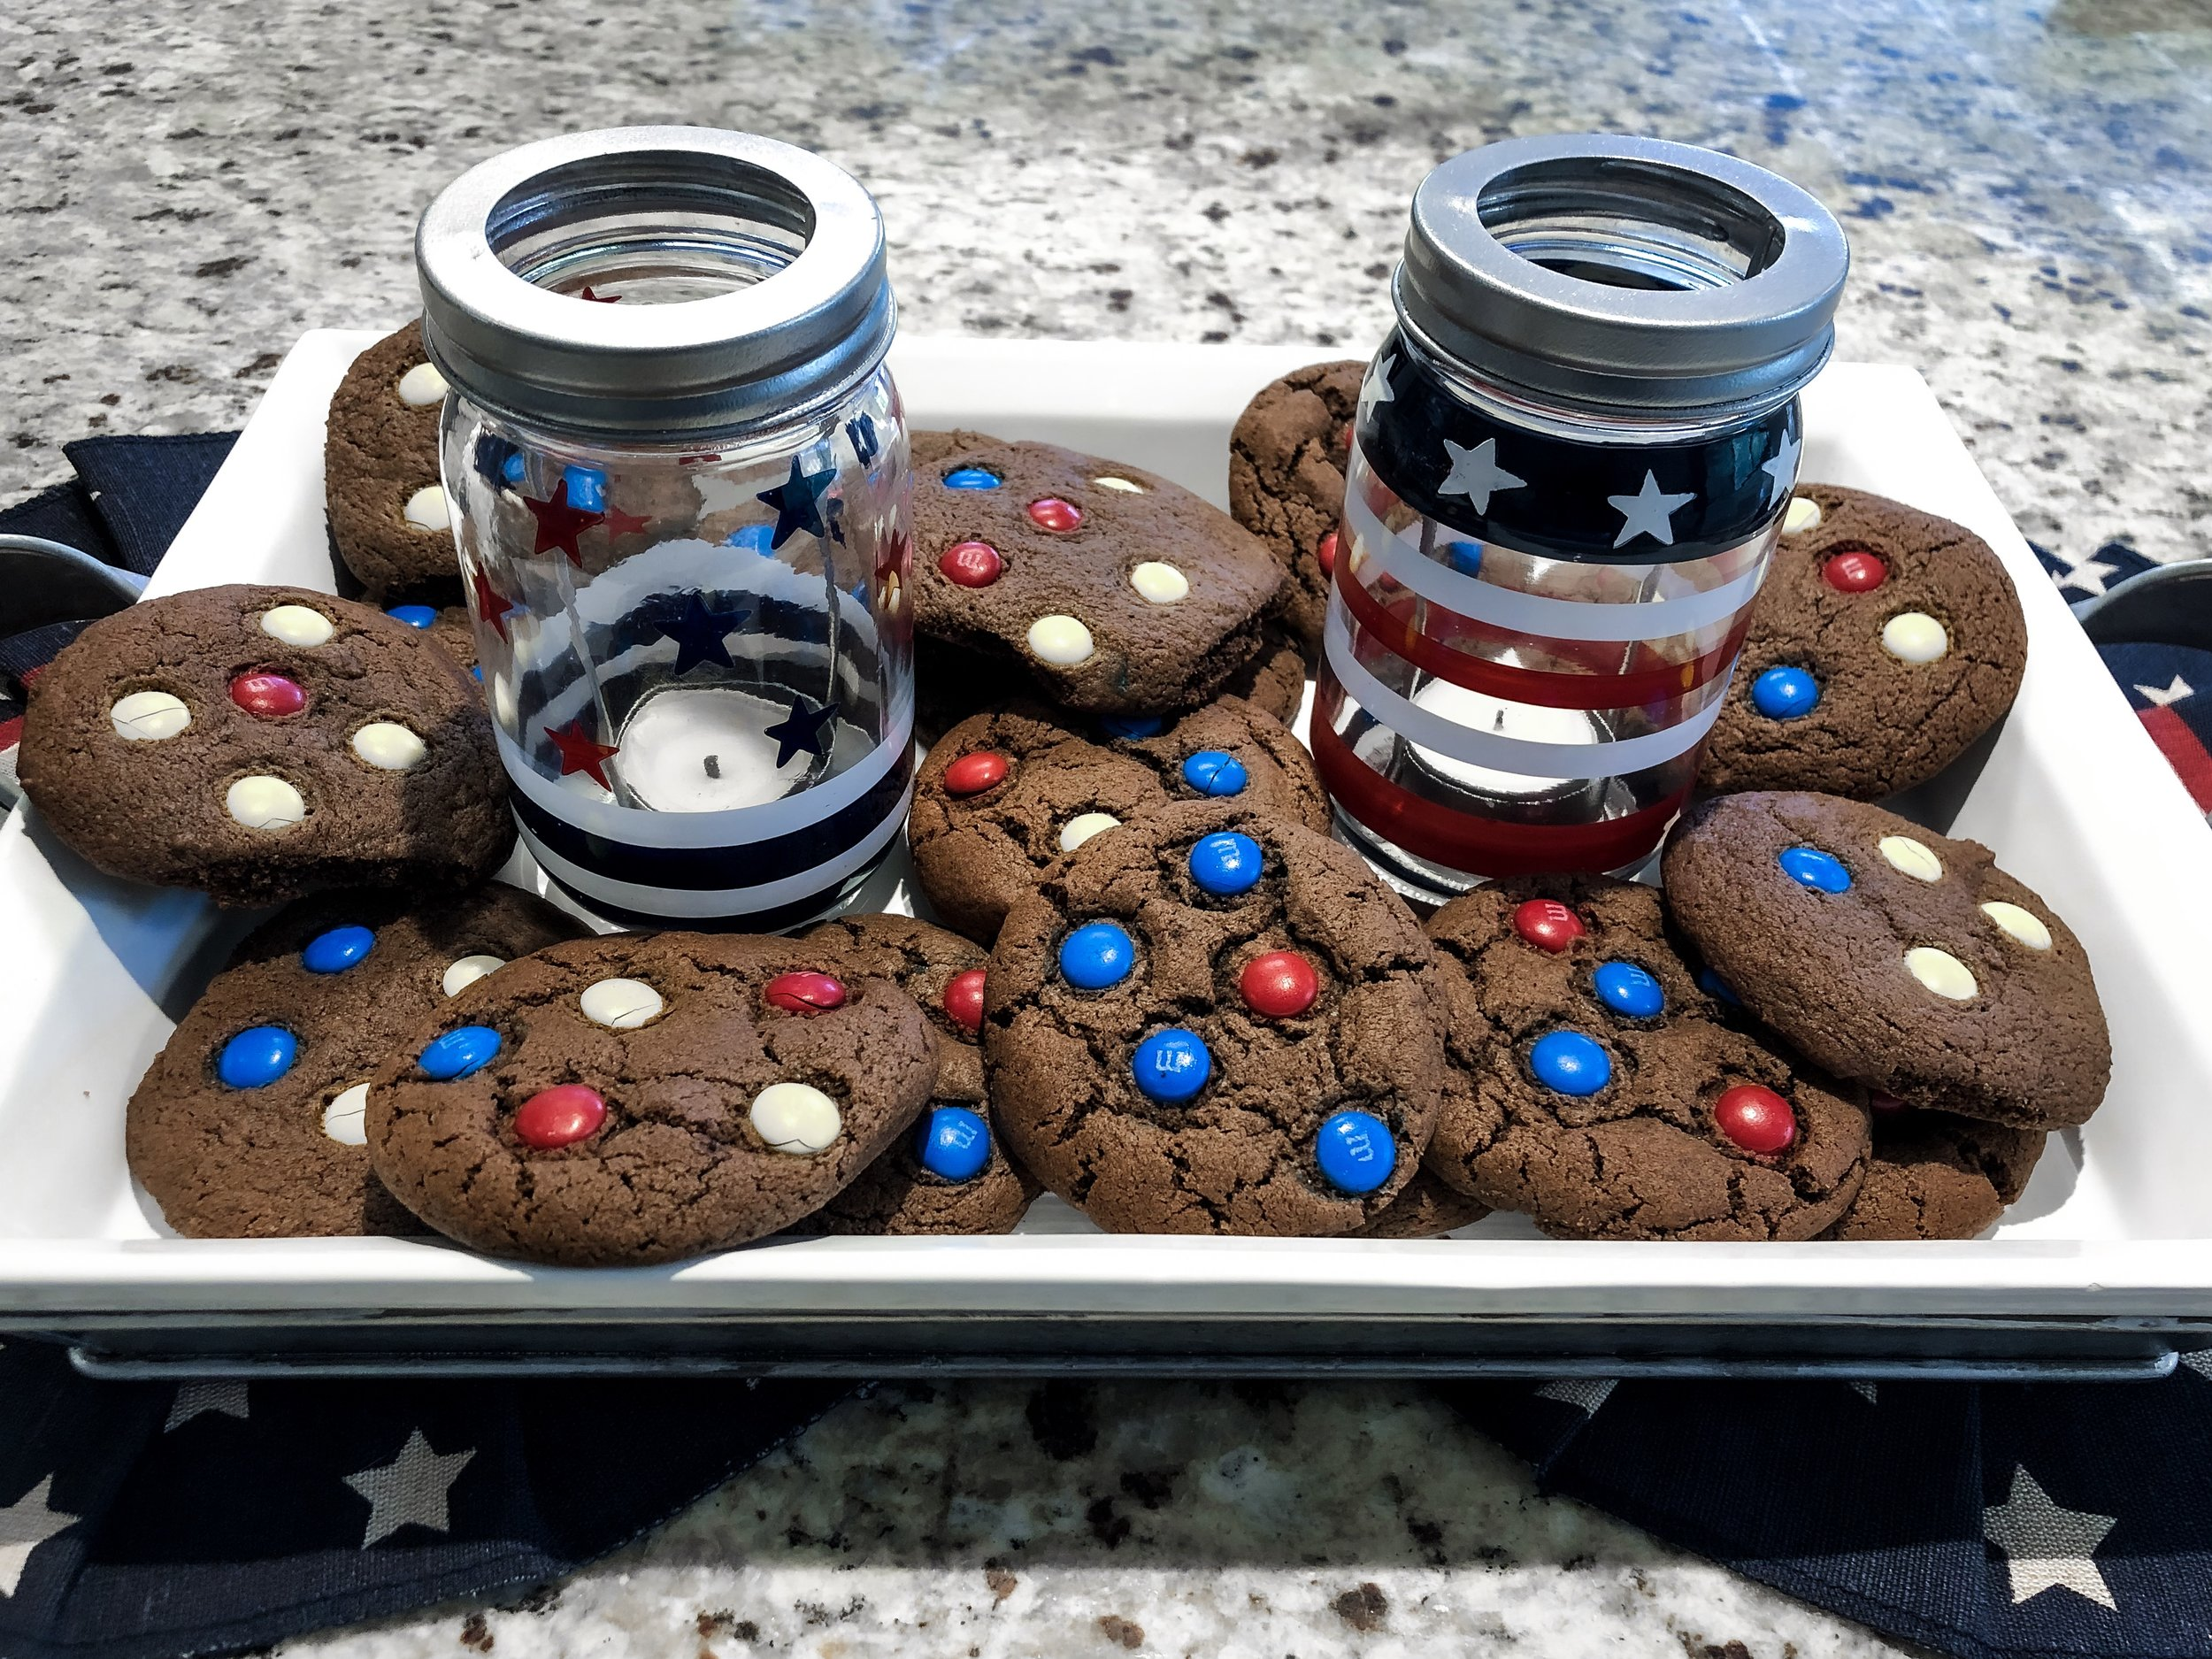 Kirkland's - Easy Red, White & Blue Cookies for July 4th